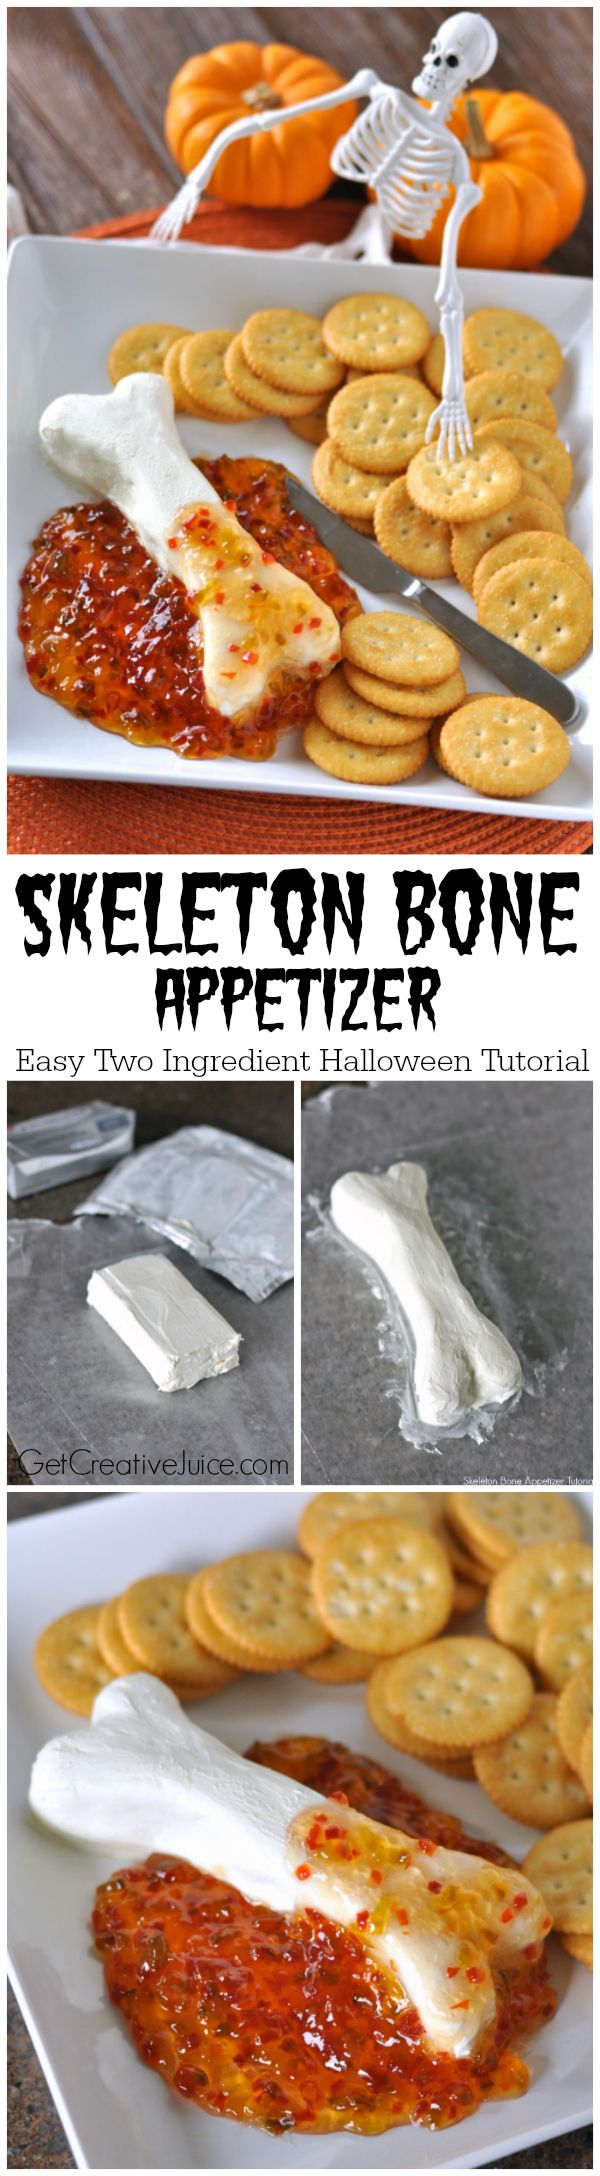 166 best Halloween Recipes images on Pinterest